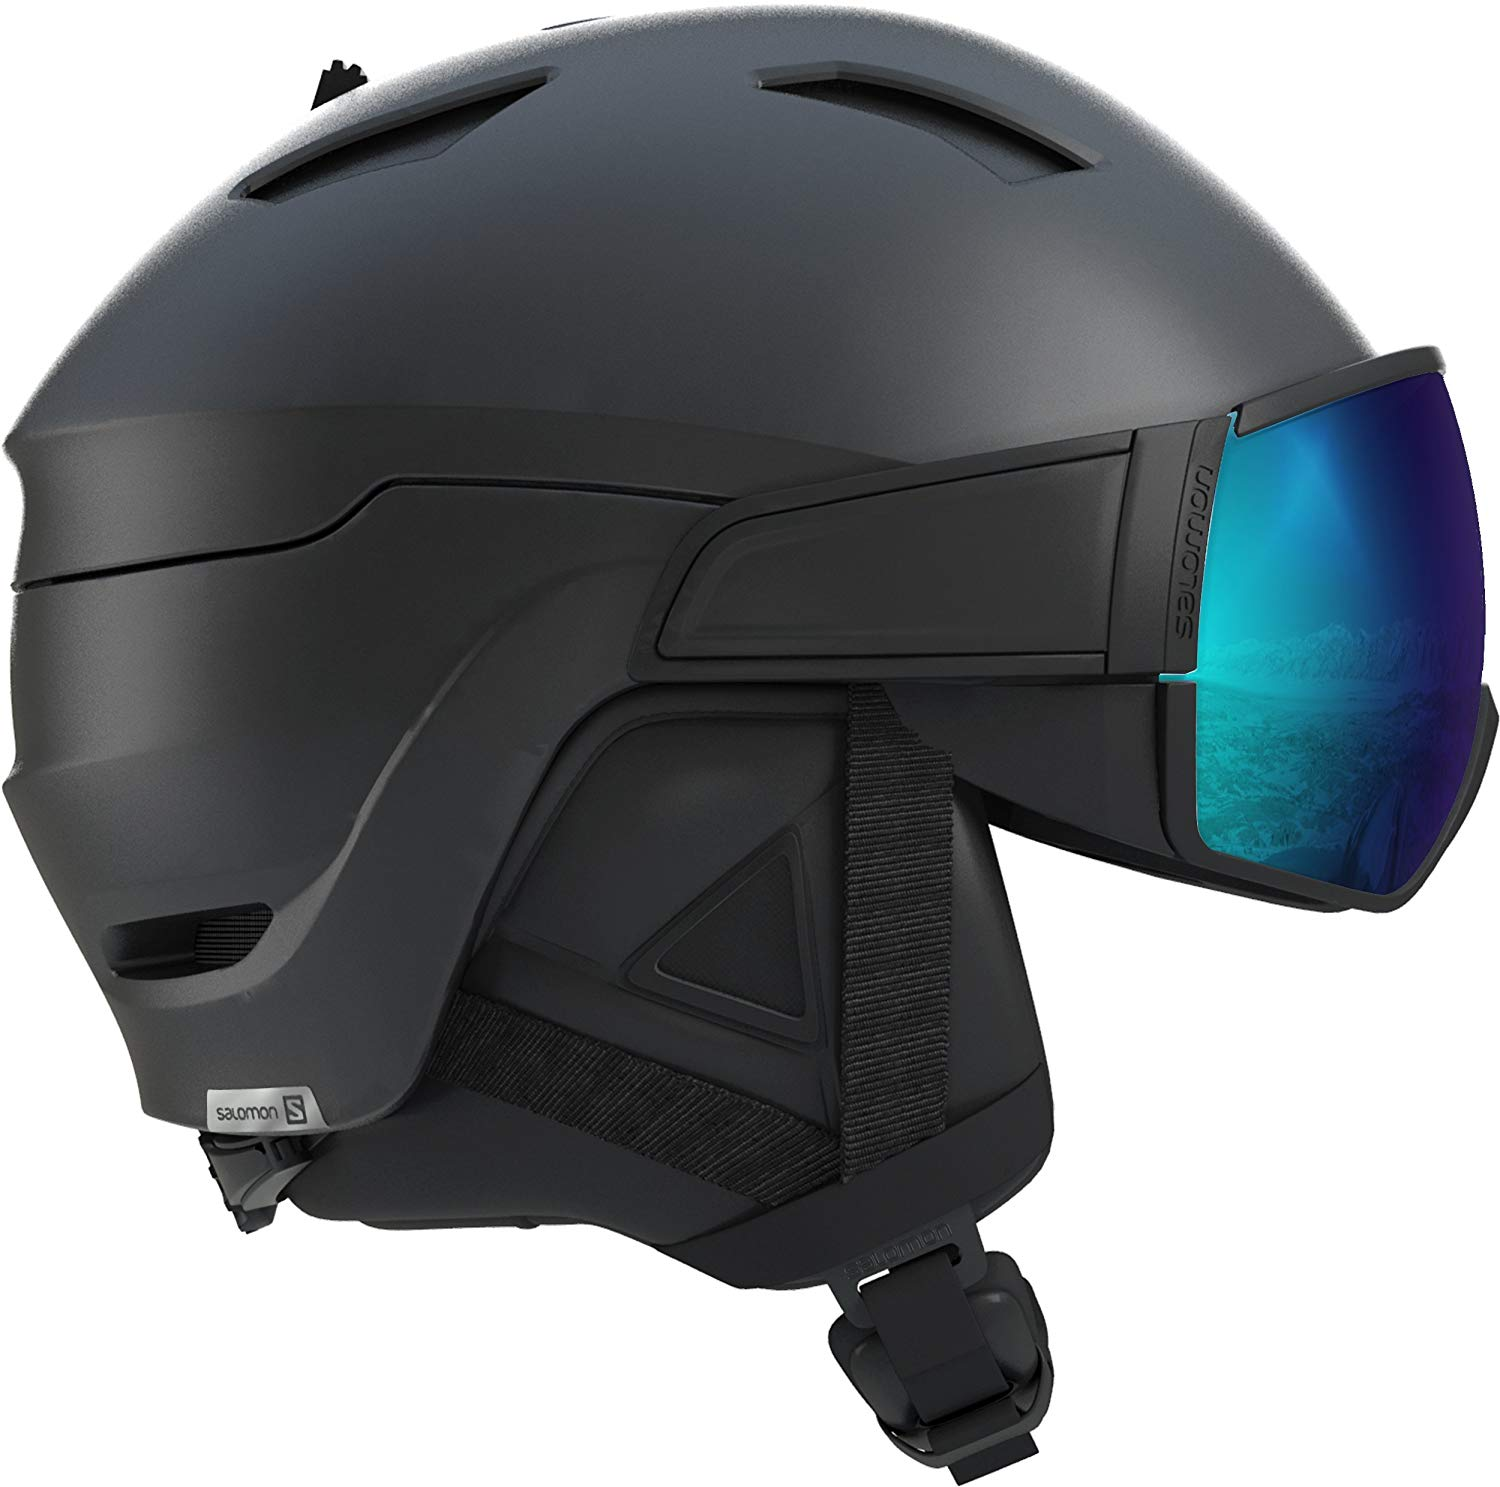 Lot 21 - Salomon Men's Driver S Helmets, Black Small RRP £138.99